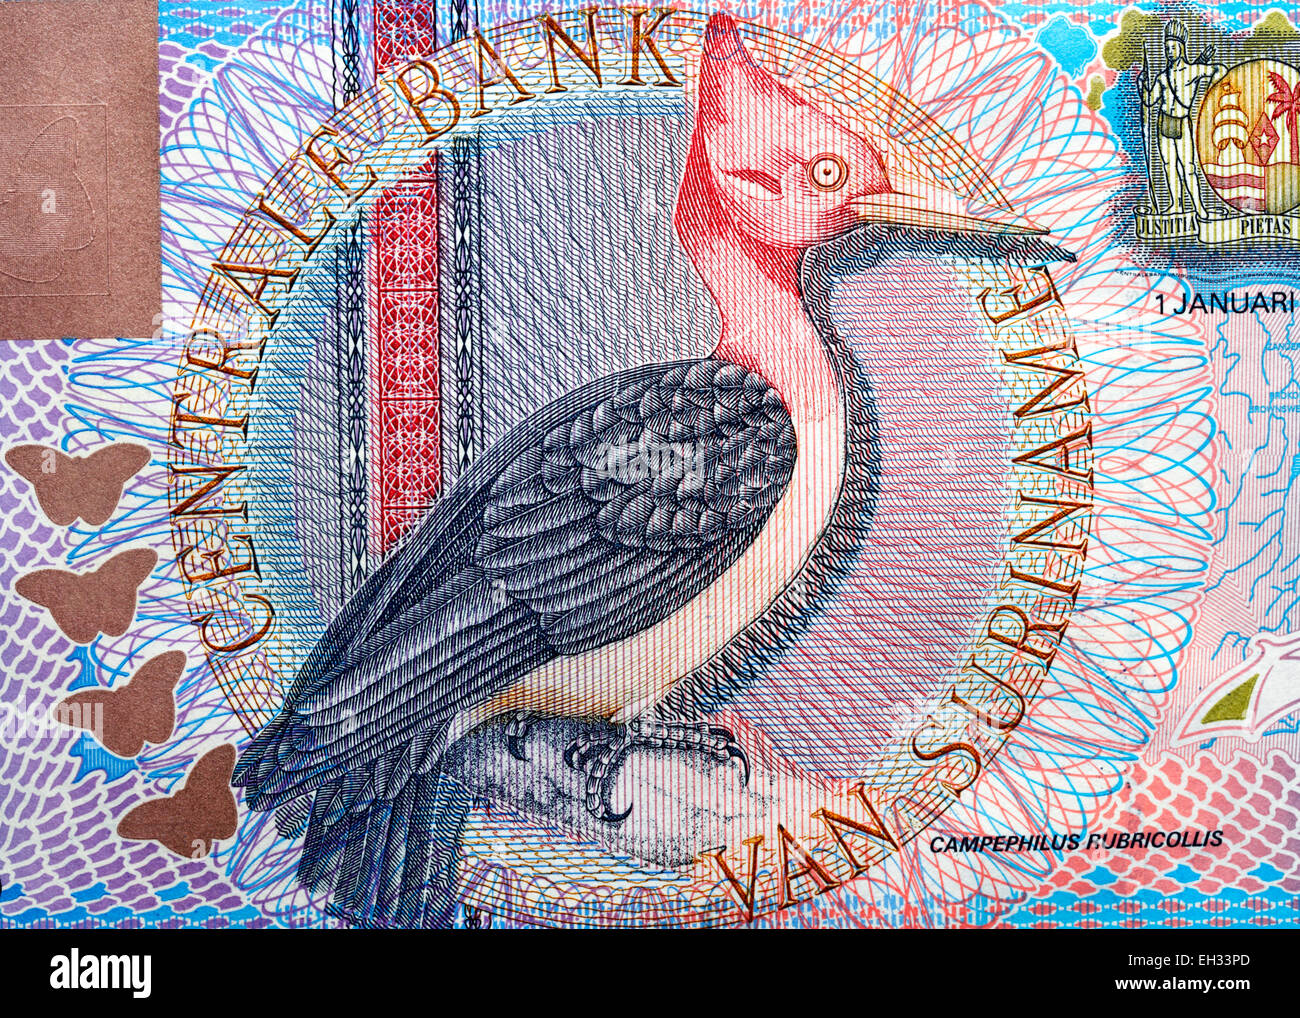 Red-necked Woodpecker (Campephilus rubricollis) from 5 gulden banknote, Suriname, 2000 - Stock Image